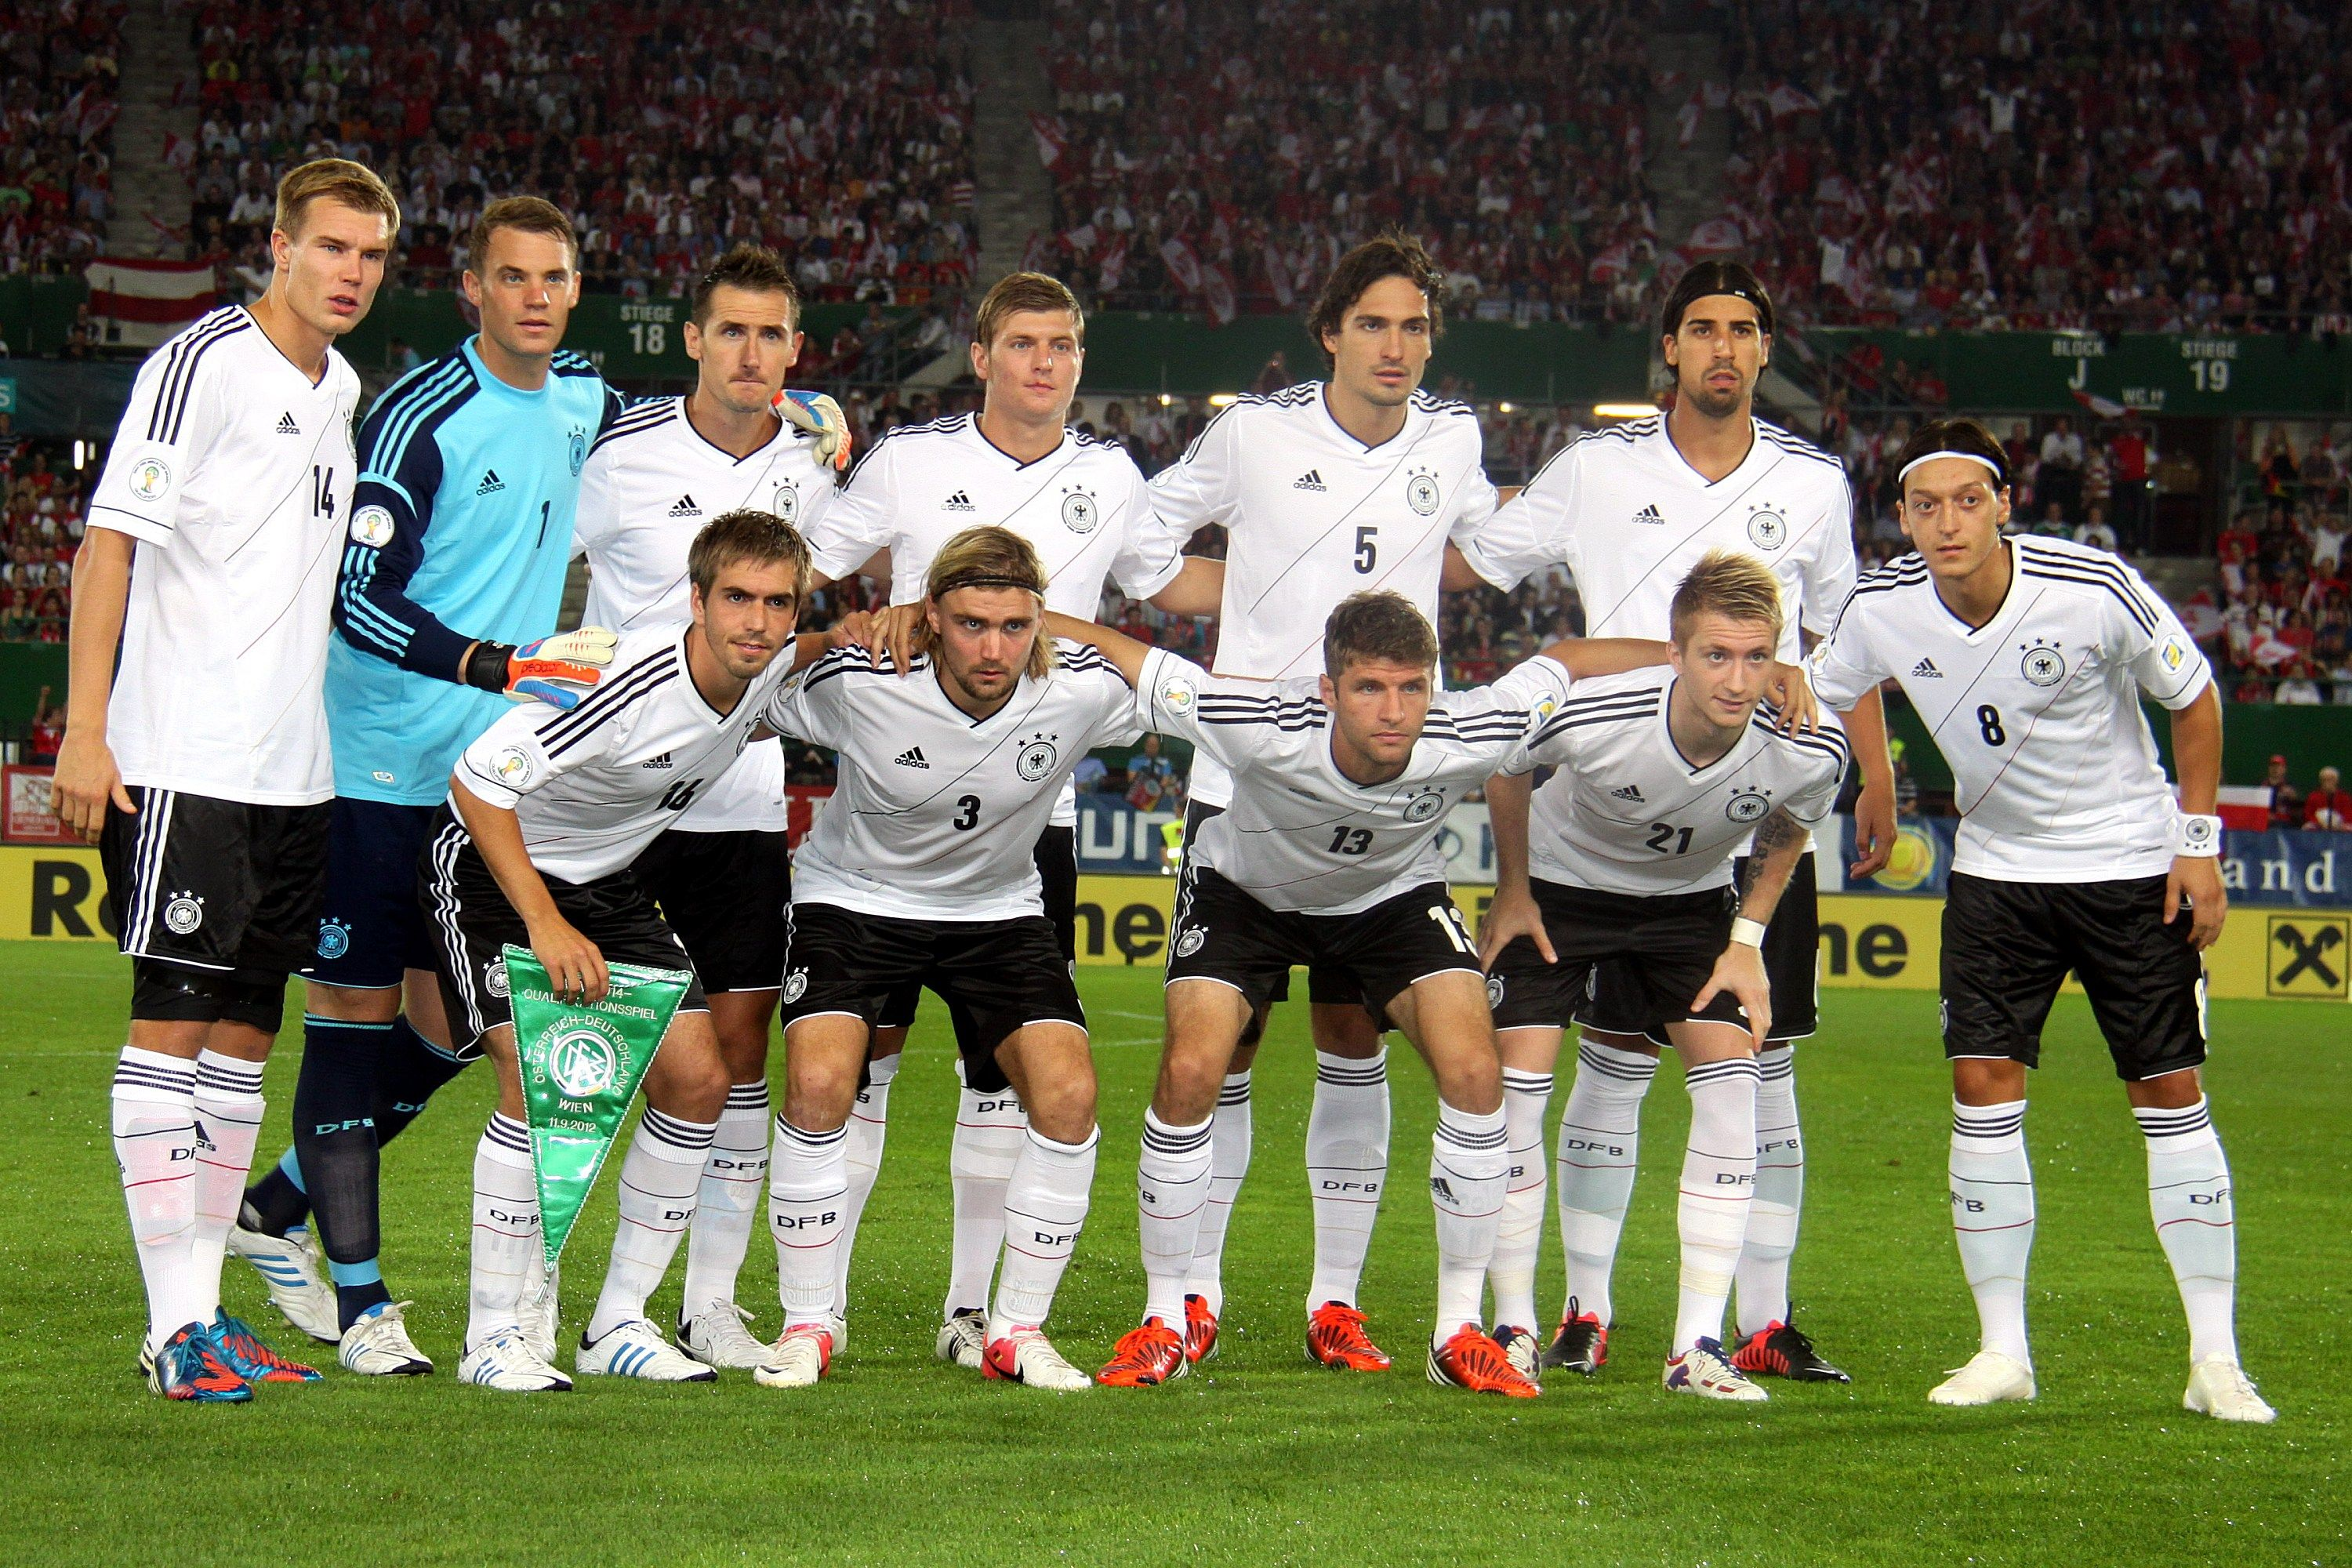 Germany Team World cup 2014 | World Cup 2014 | Germany